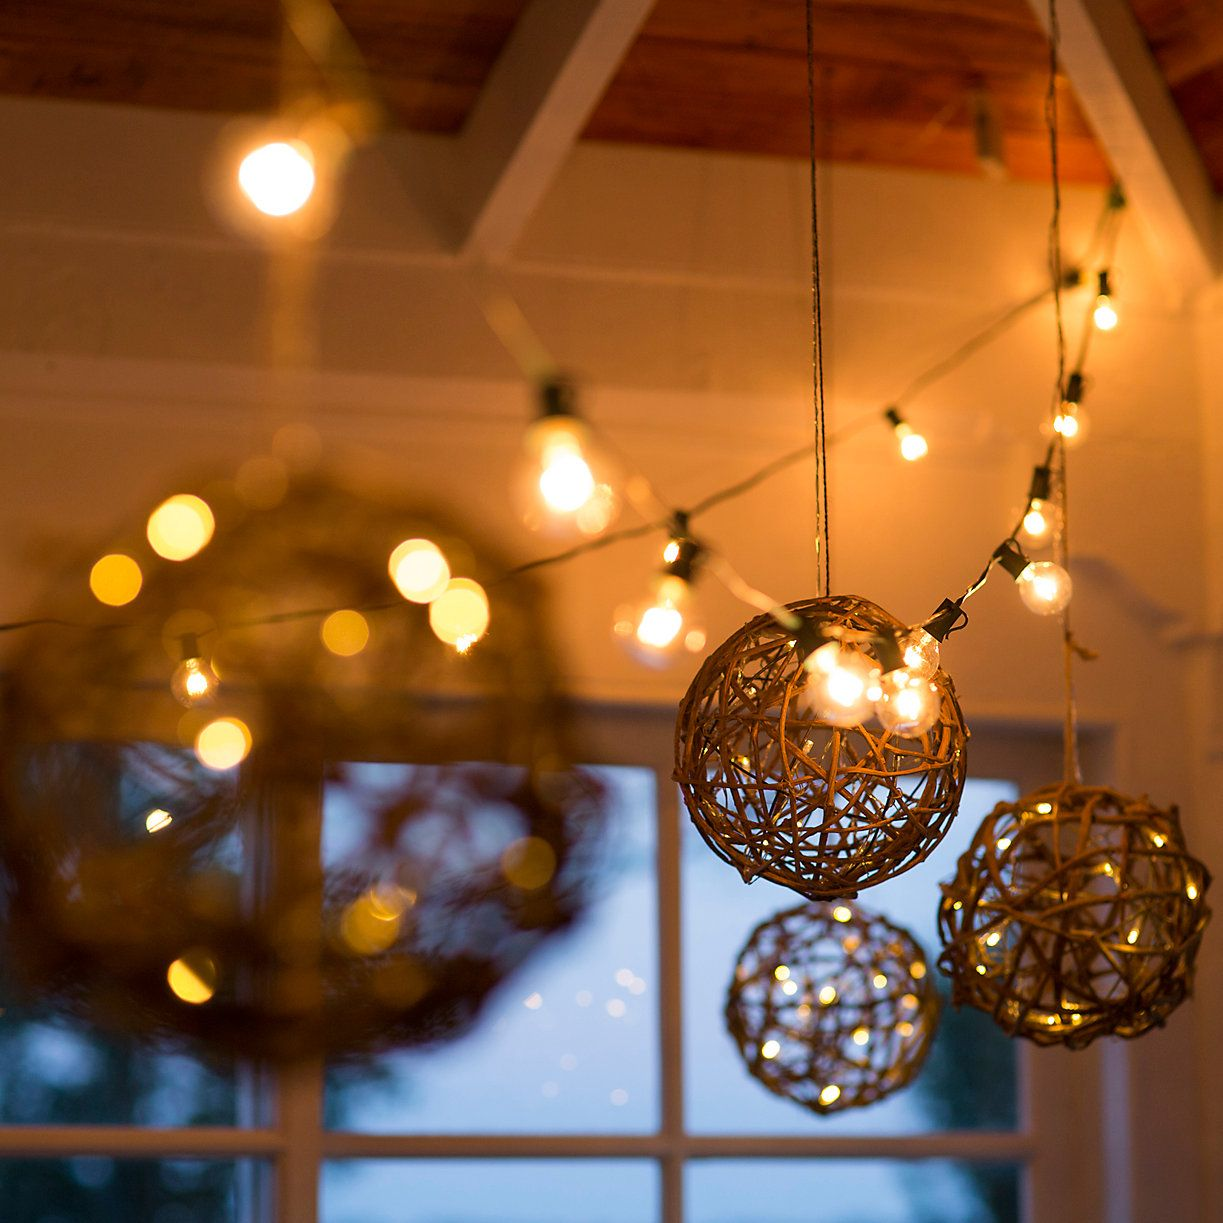 Christmas decorations for large indoor spaces - Illuminated Vine Sphere